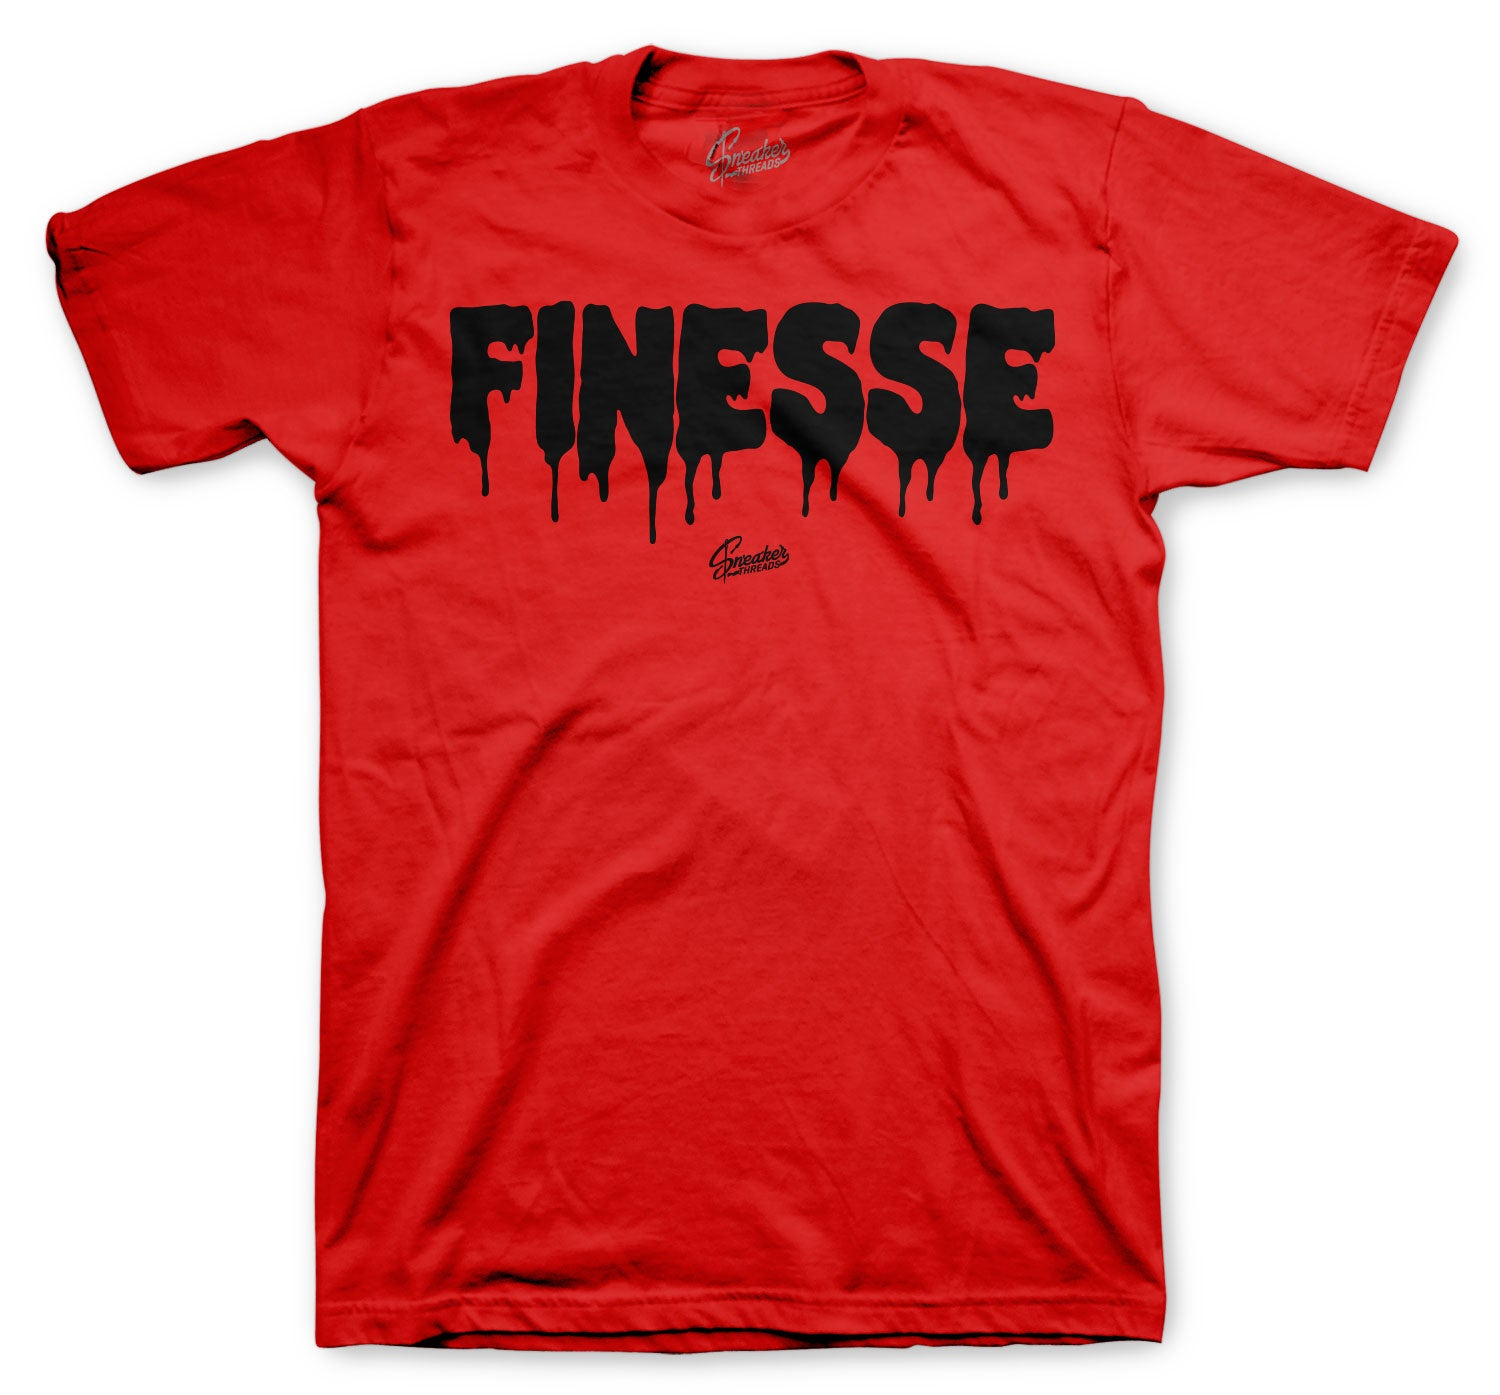 Jordan 12 Super Bowl Shirt - Finesse - Red